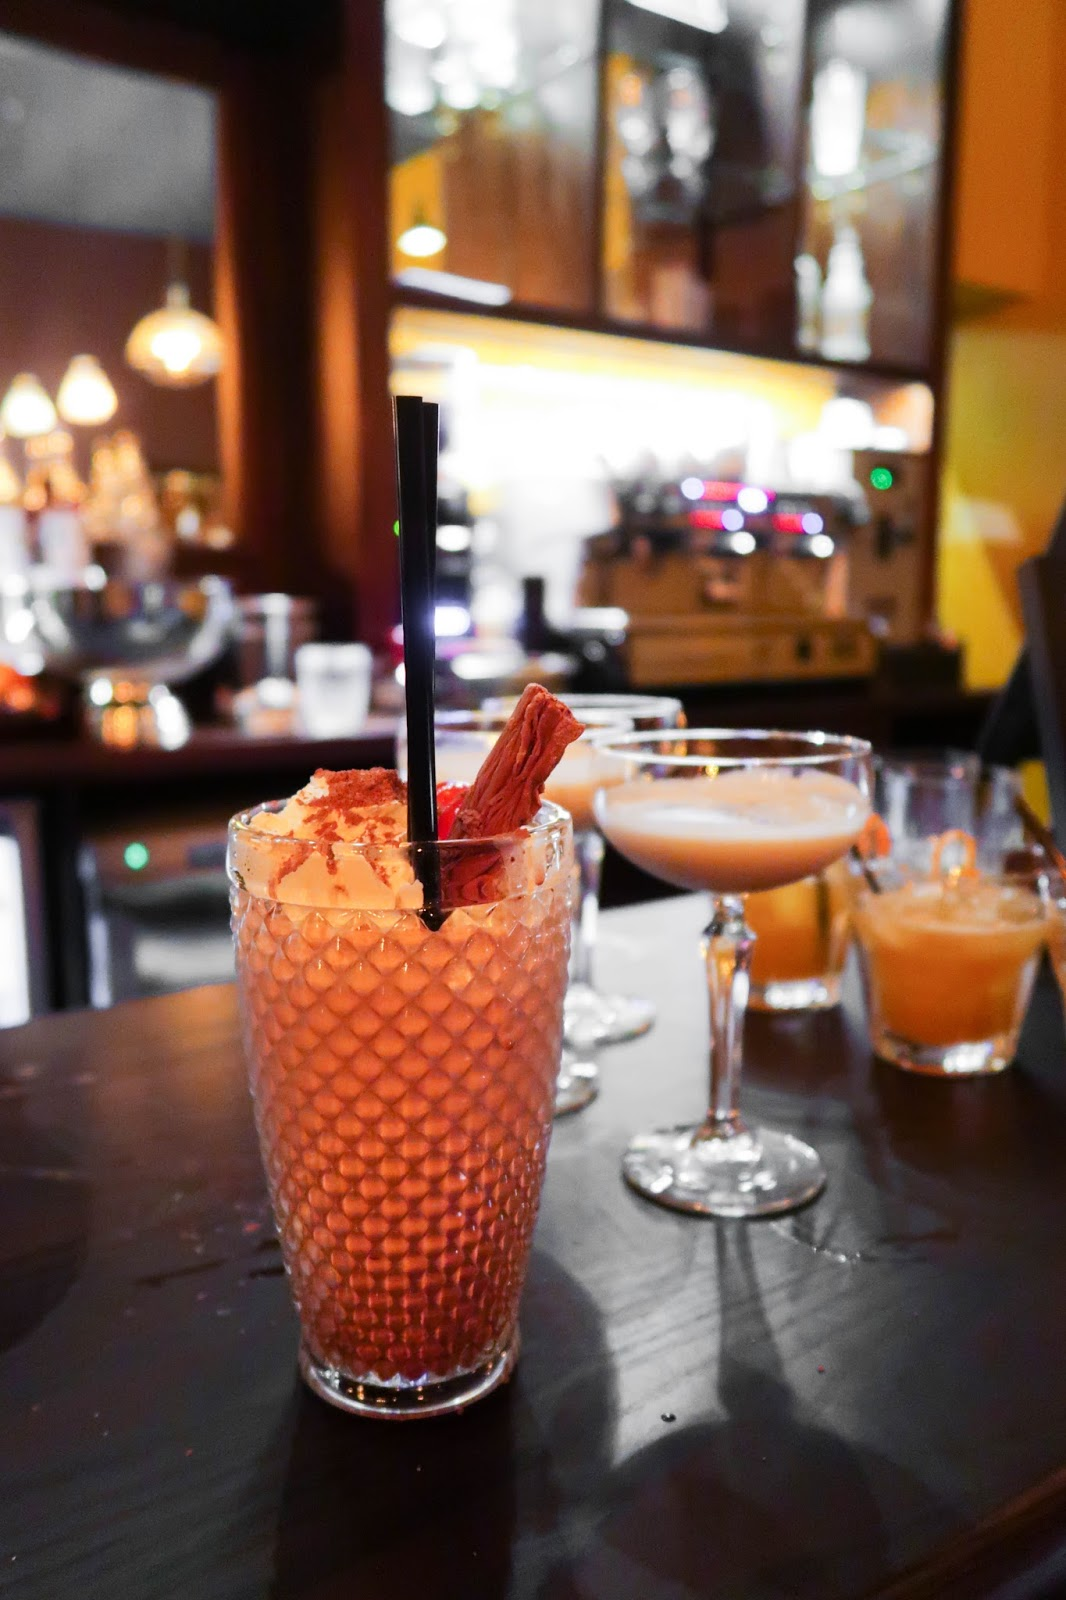 My Belle's: UK's only gelato cocktail bar